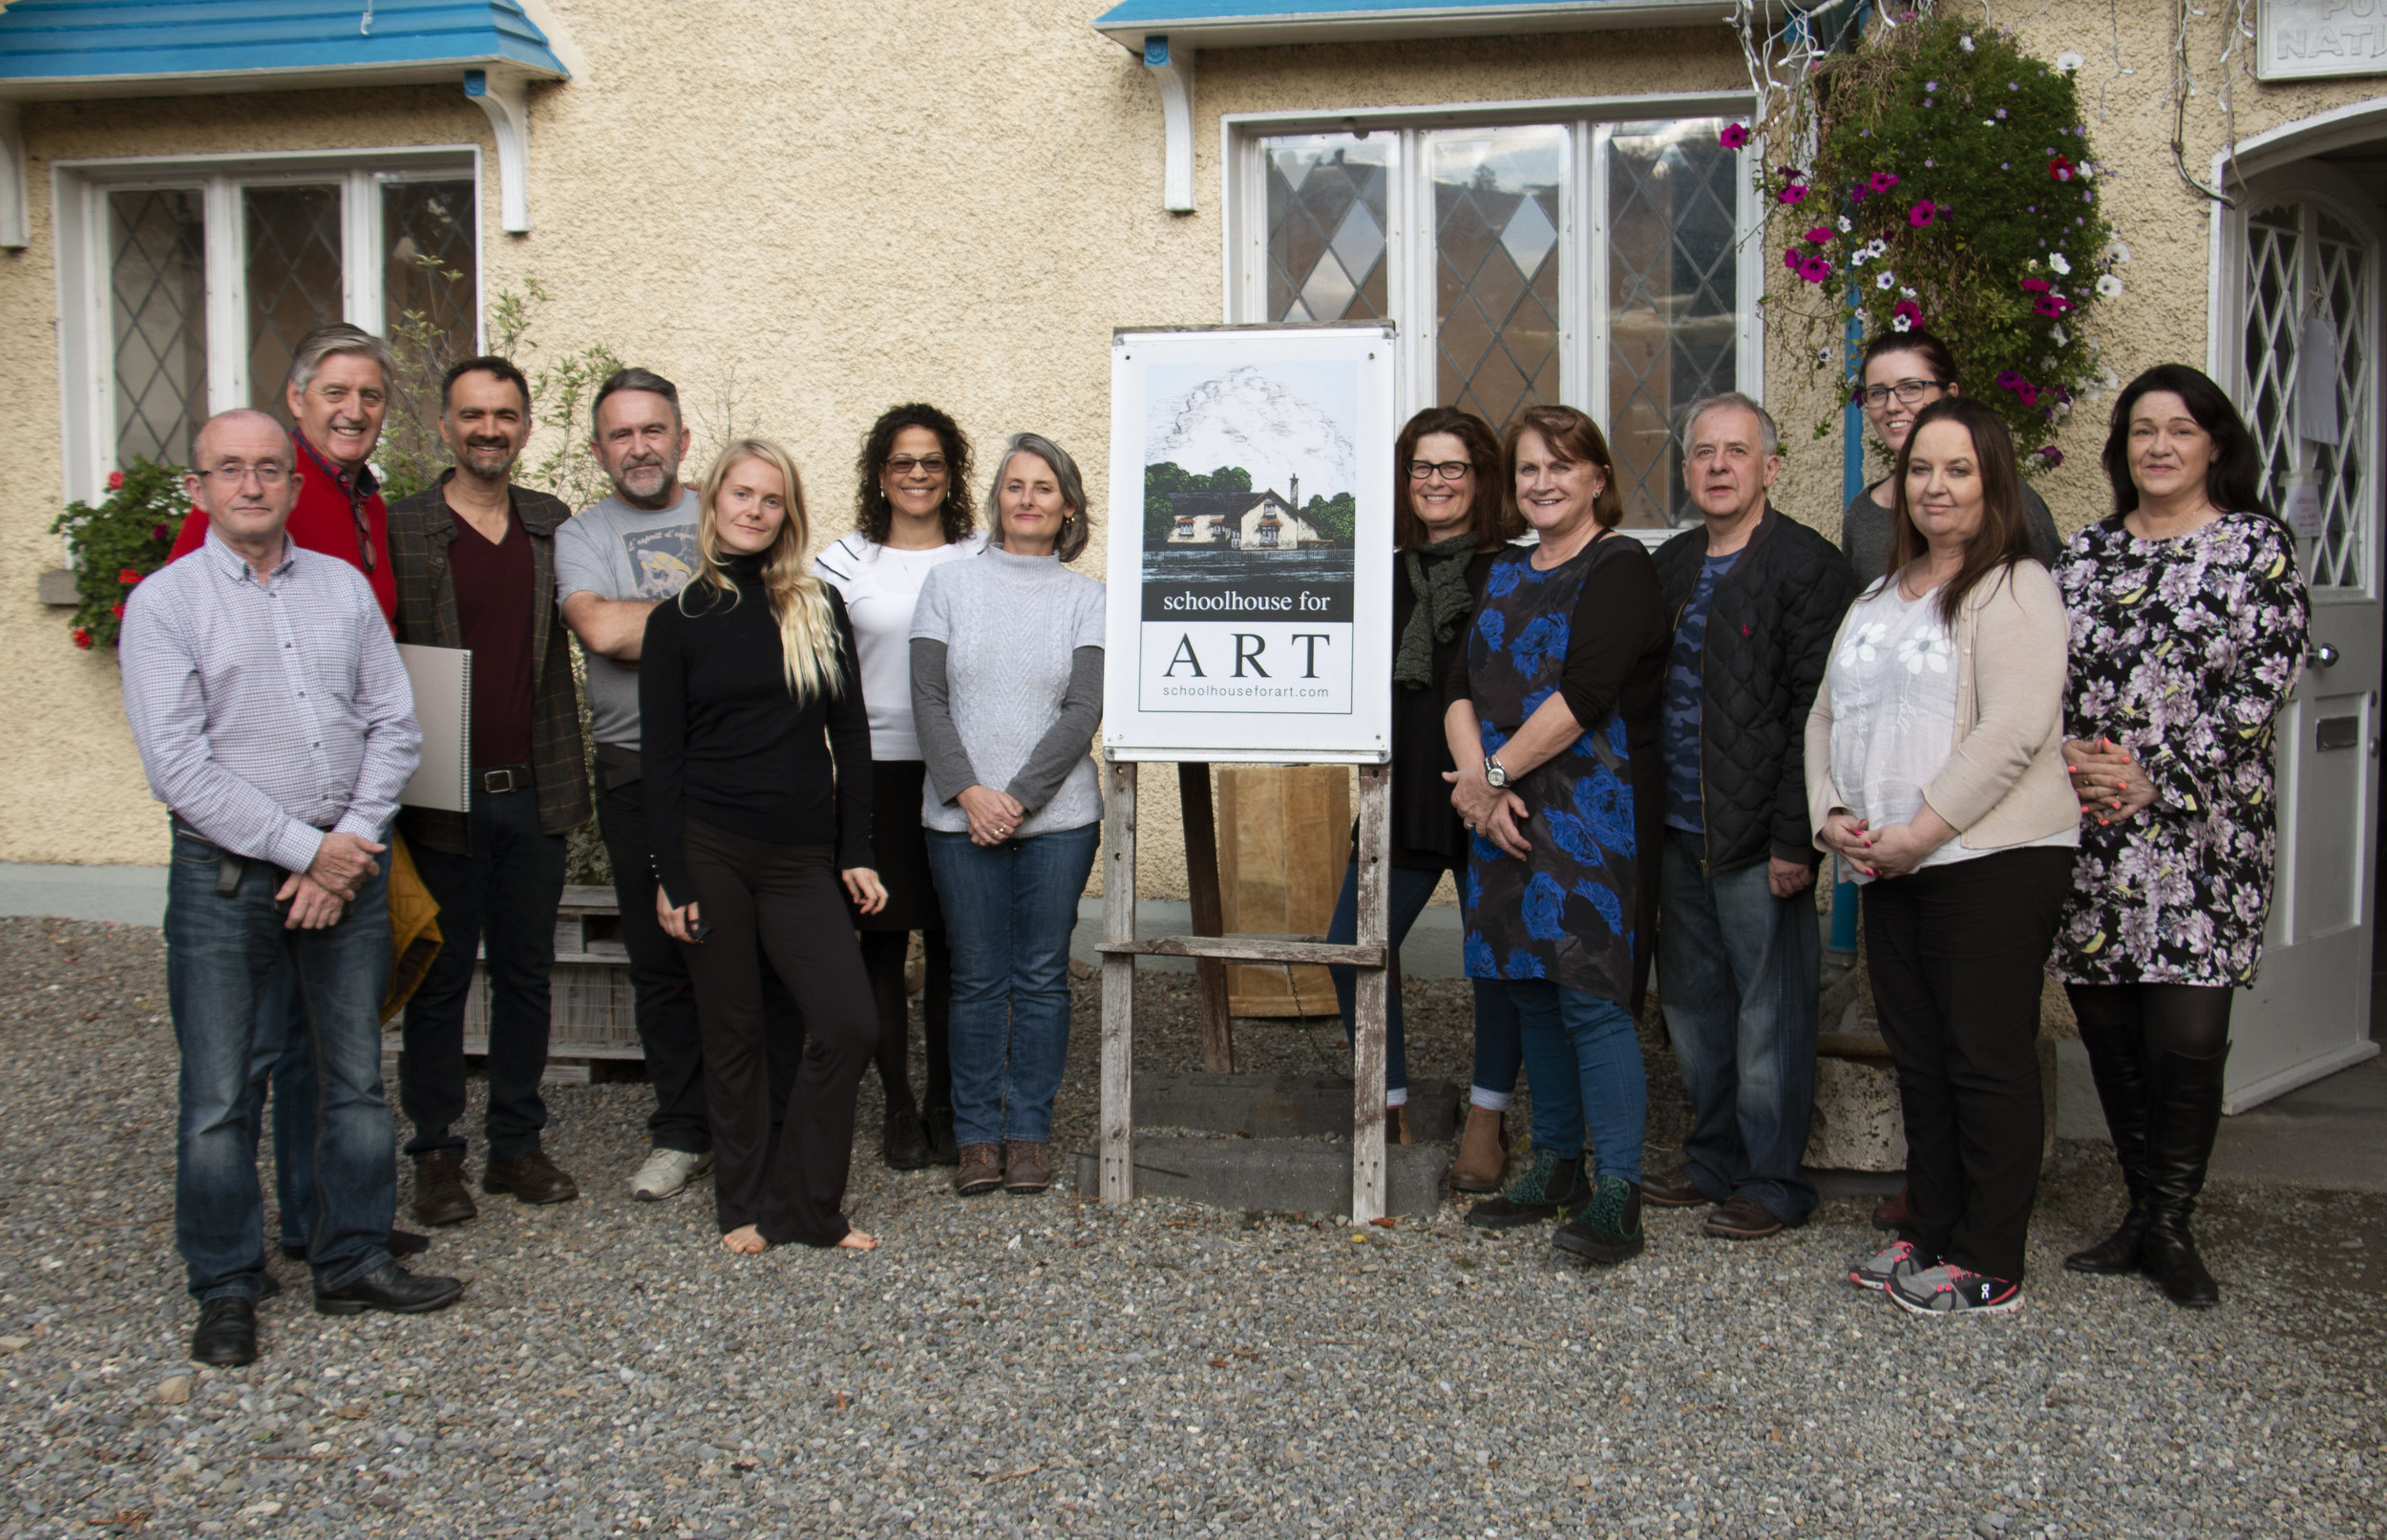 Rob with students from one of his two workshops at the Schoolhouse for Art in Enniskerry, Ireland.